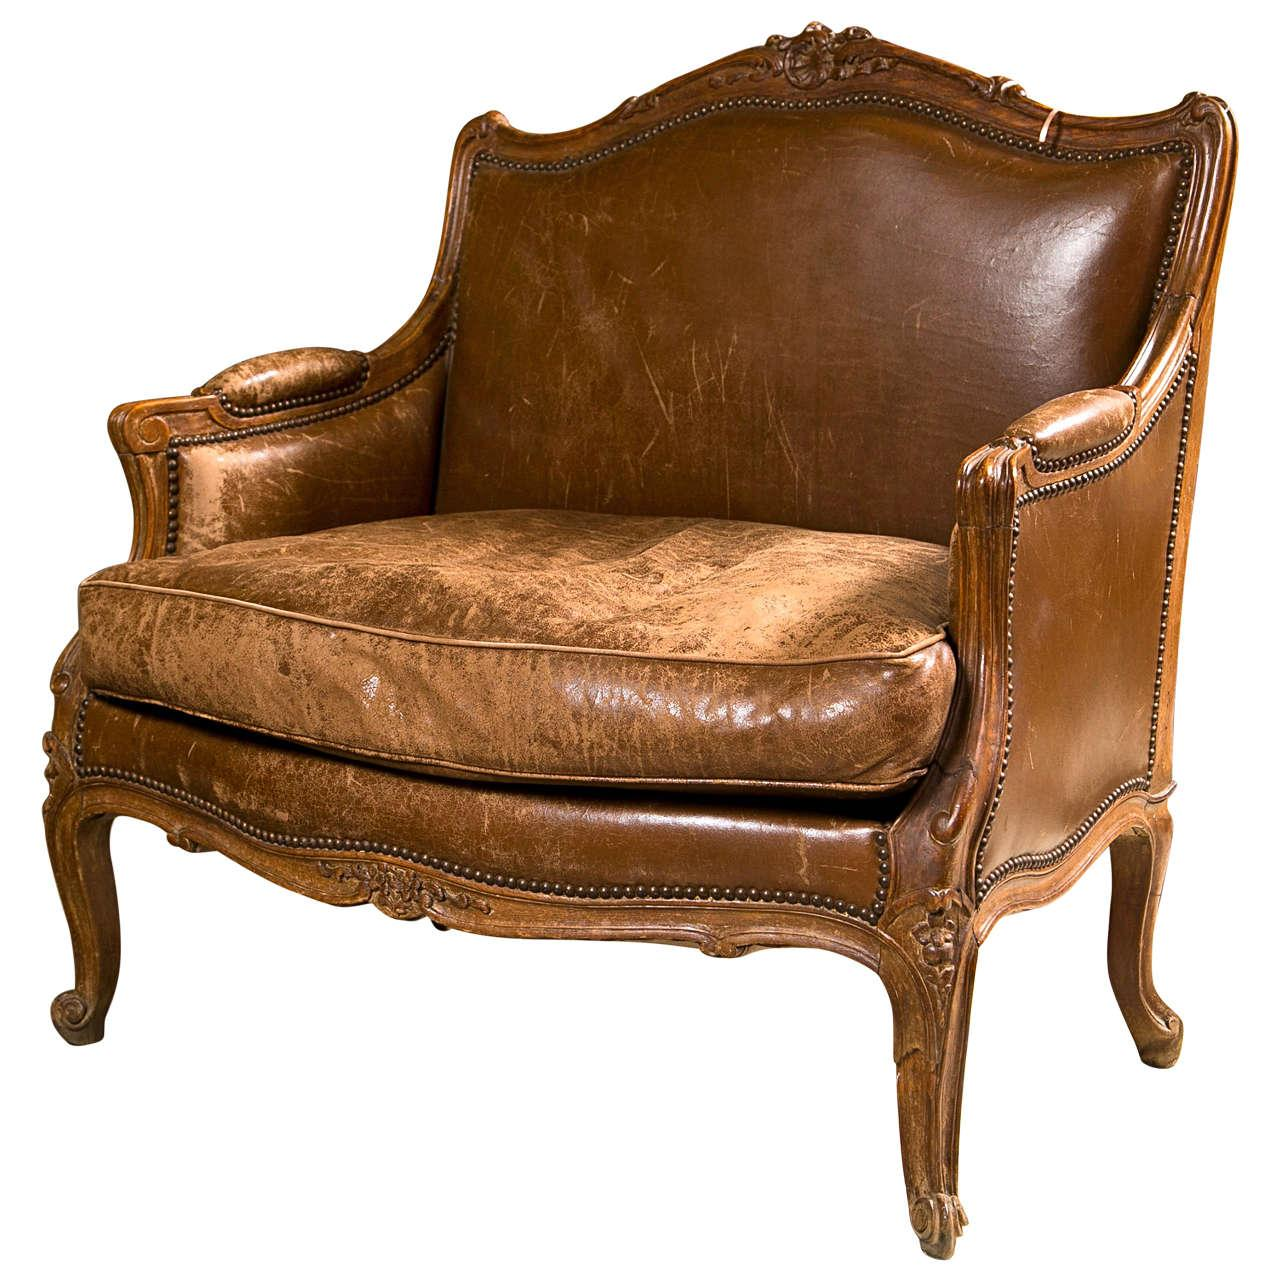 French Provincial Style Bergere Chair  Chairish